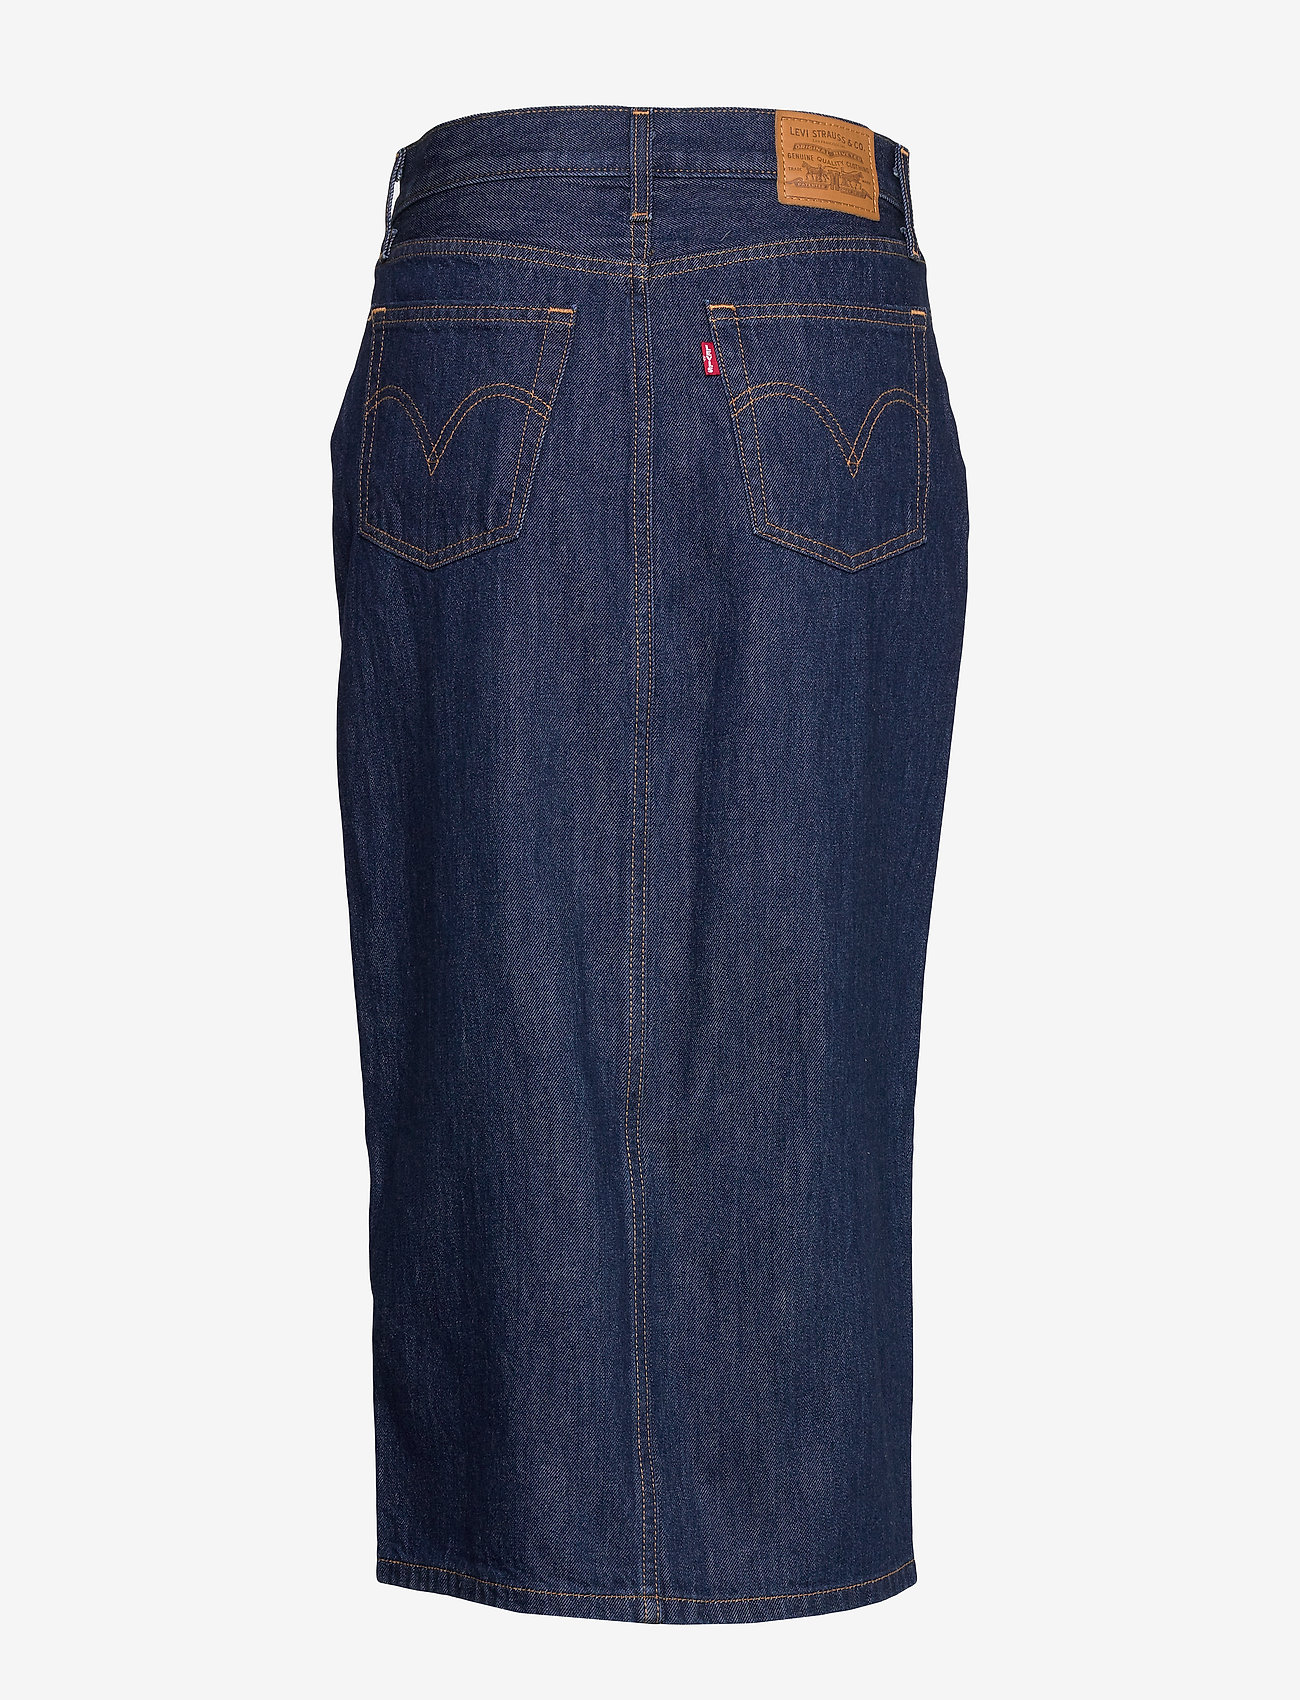 LEVI´S Women - BUTTON FRONT MIDI SKIRT JUNIPE - denimnederdele - dark indigo - flat finish - 1